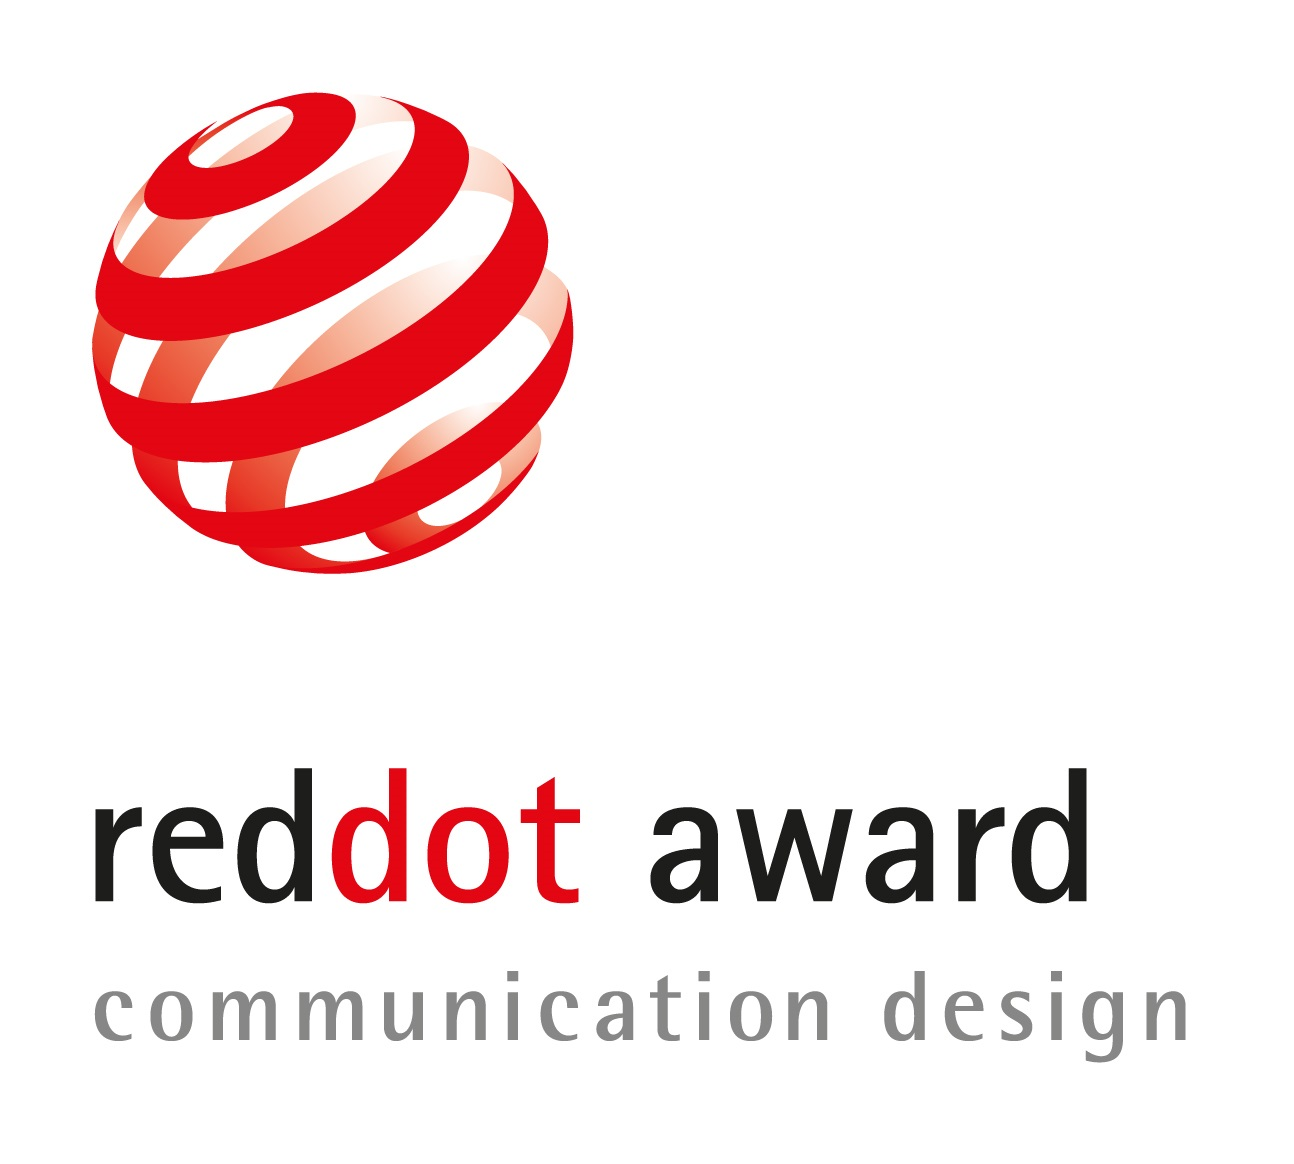 Red Dot Award Communication Design Logo